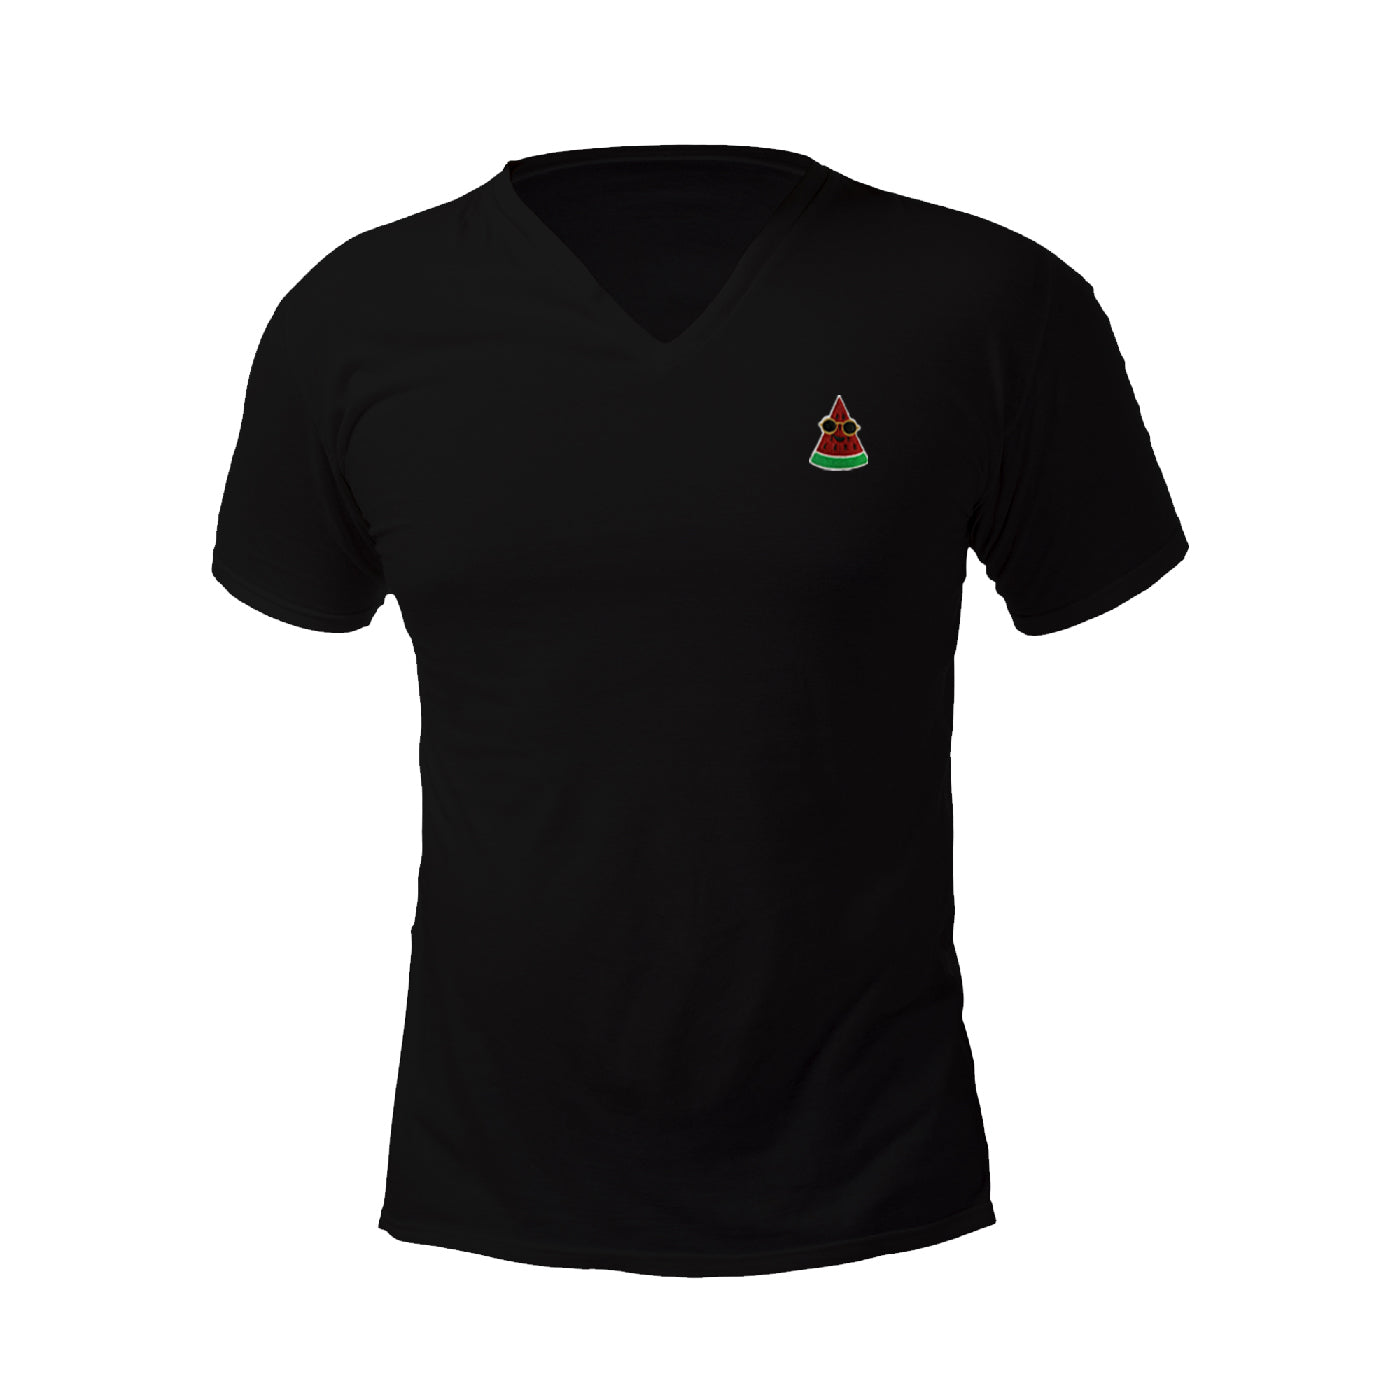 Pologize™ Watermelon Embroidered V-Neck T-Shirt